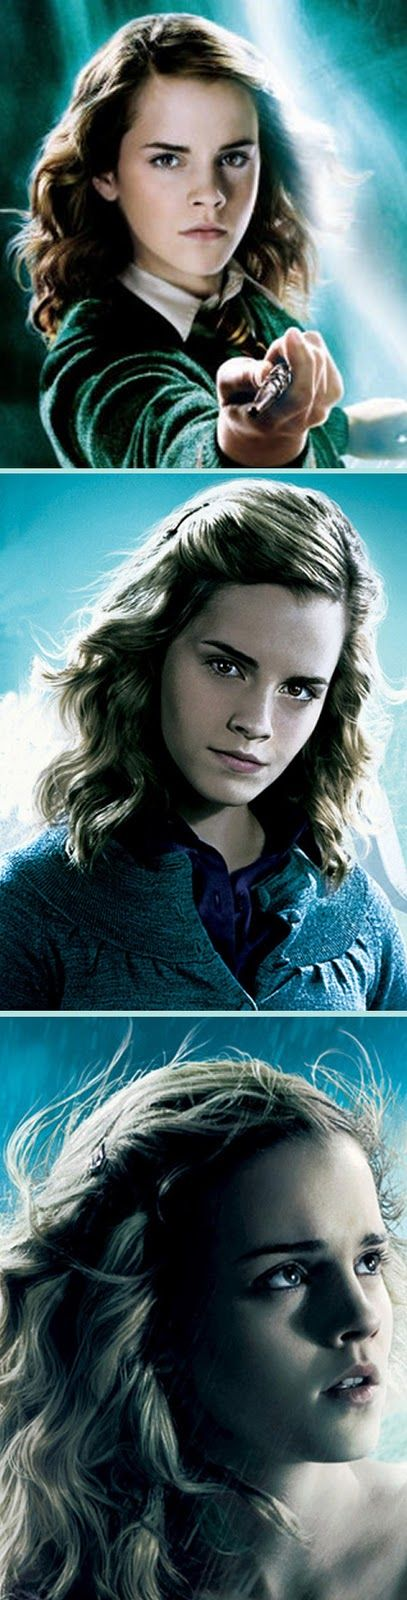 hermione hermione granger and harry potter on pinterest. Black Bedroom Furniture Sets. Home Design Ideas